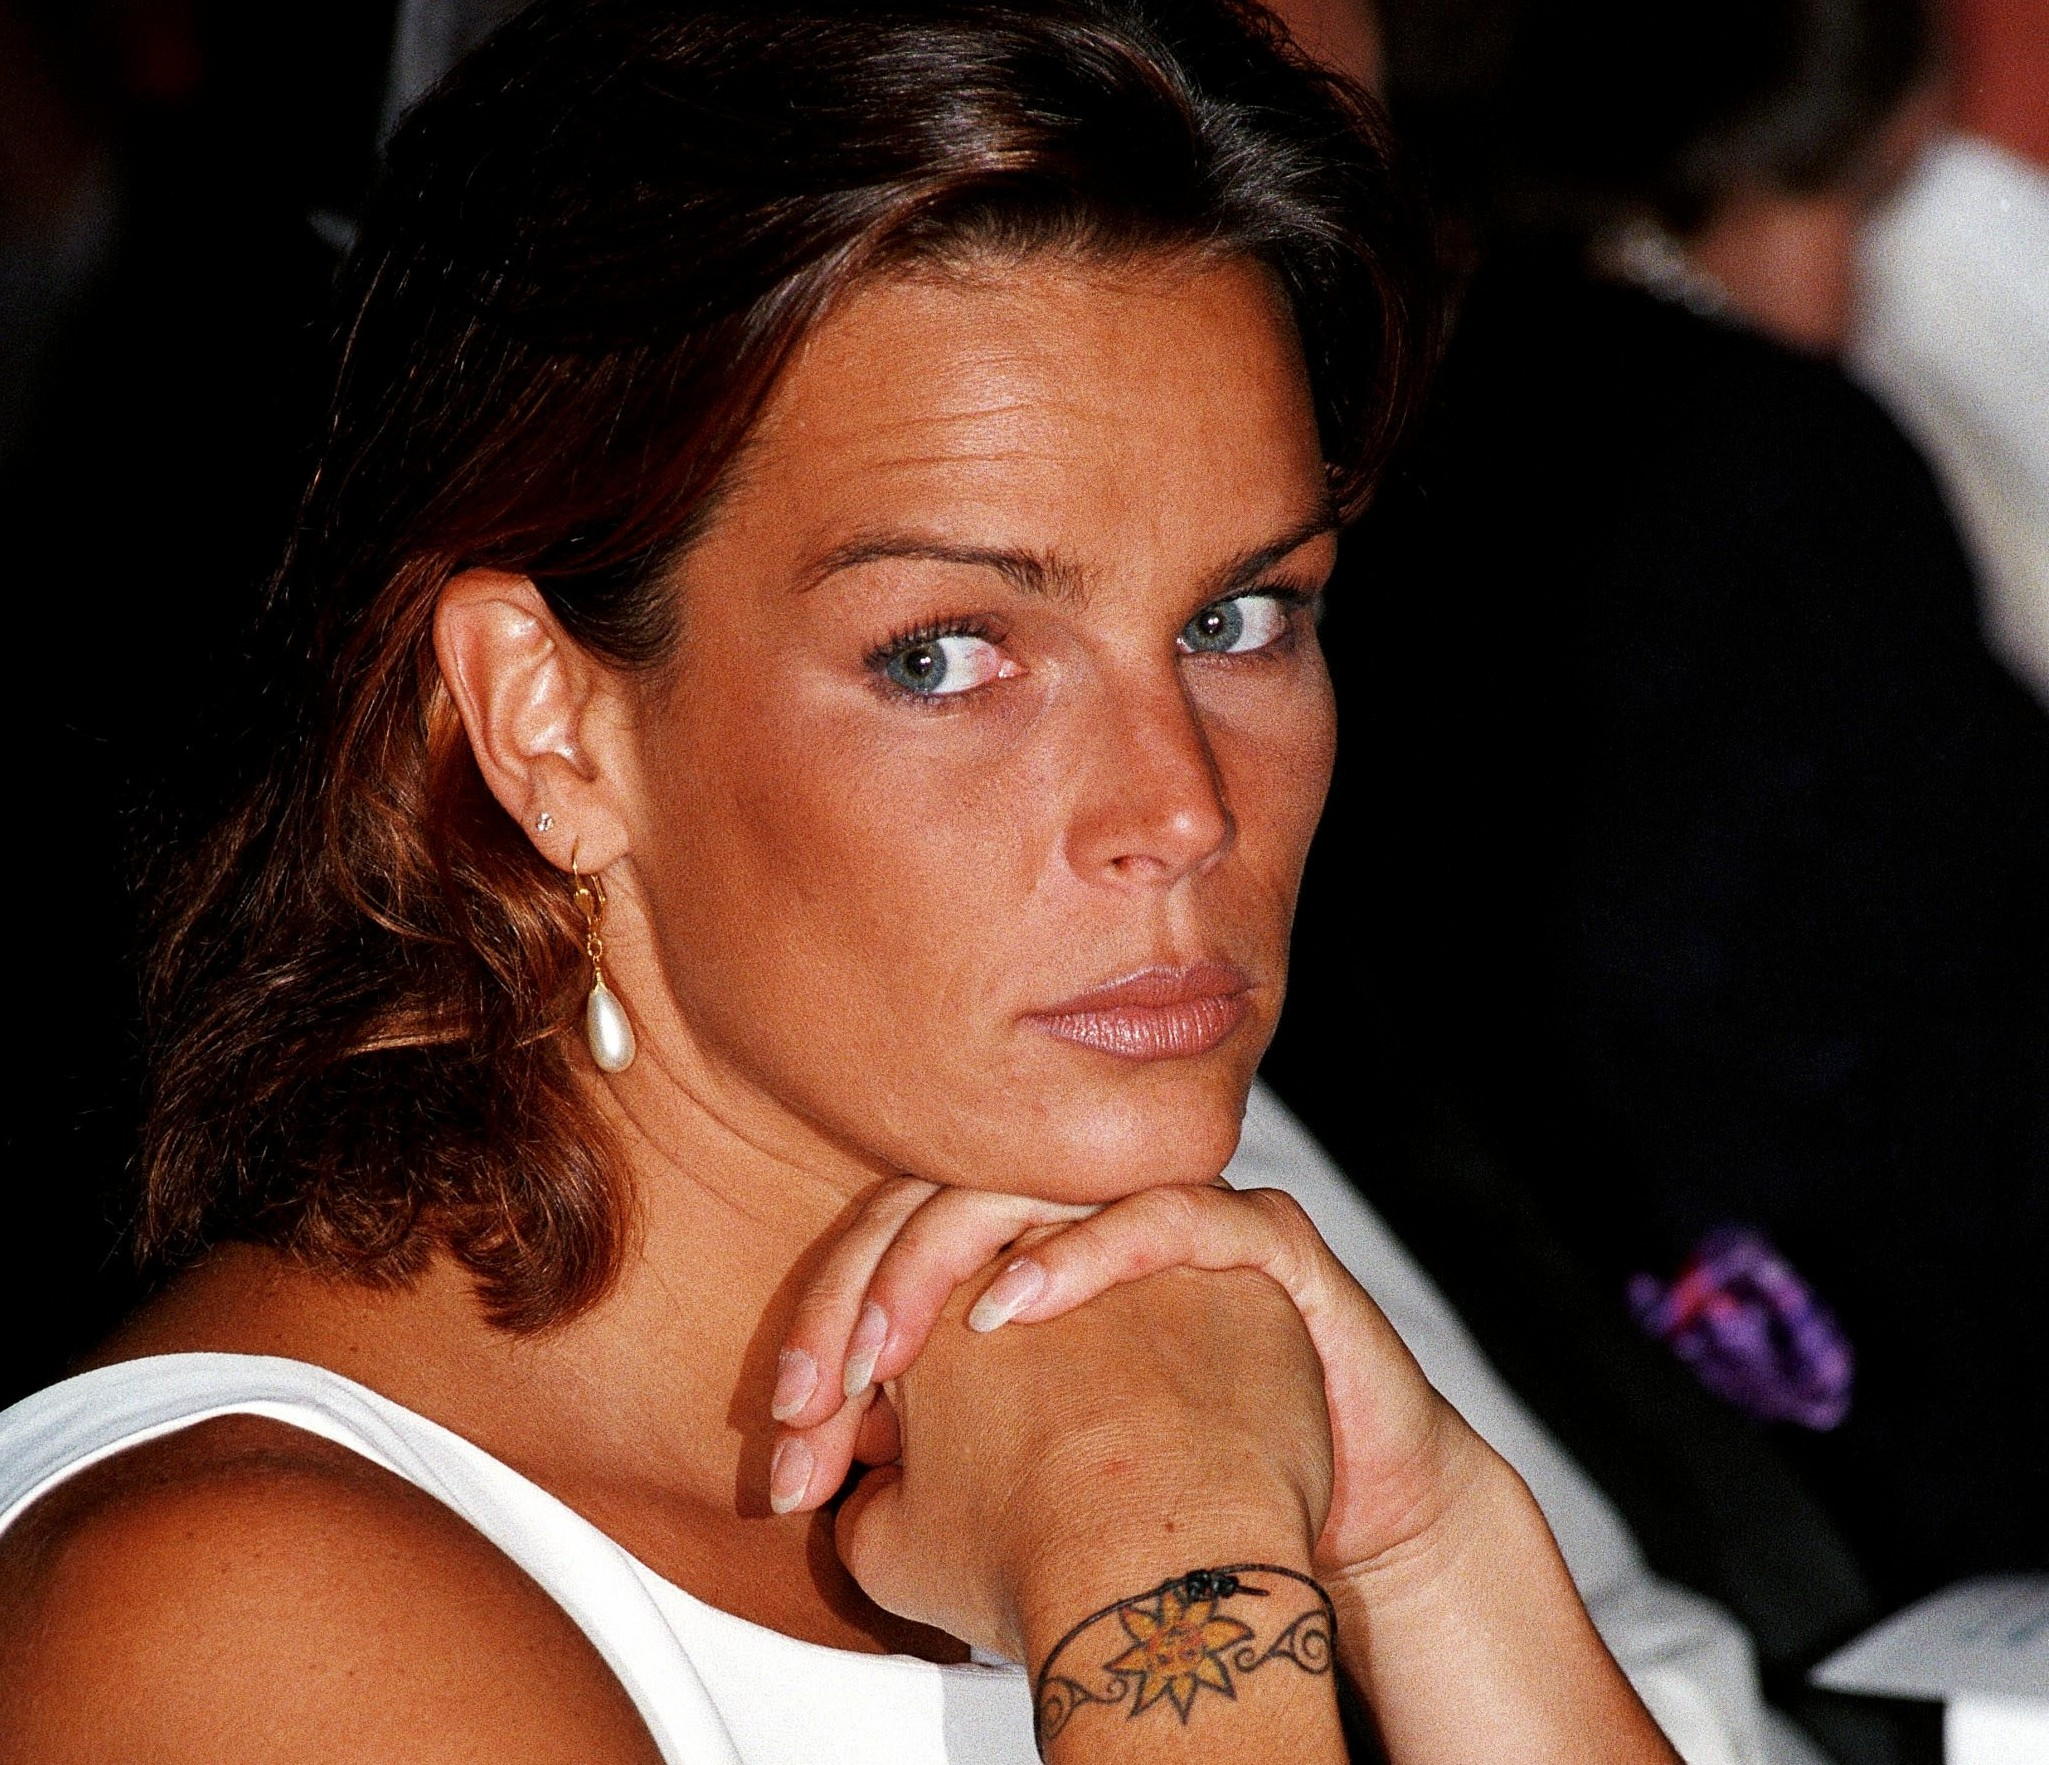 Princess Stéphanie of Monaco Facts